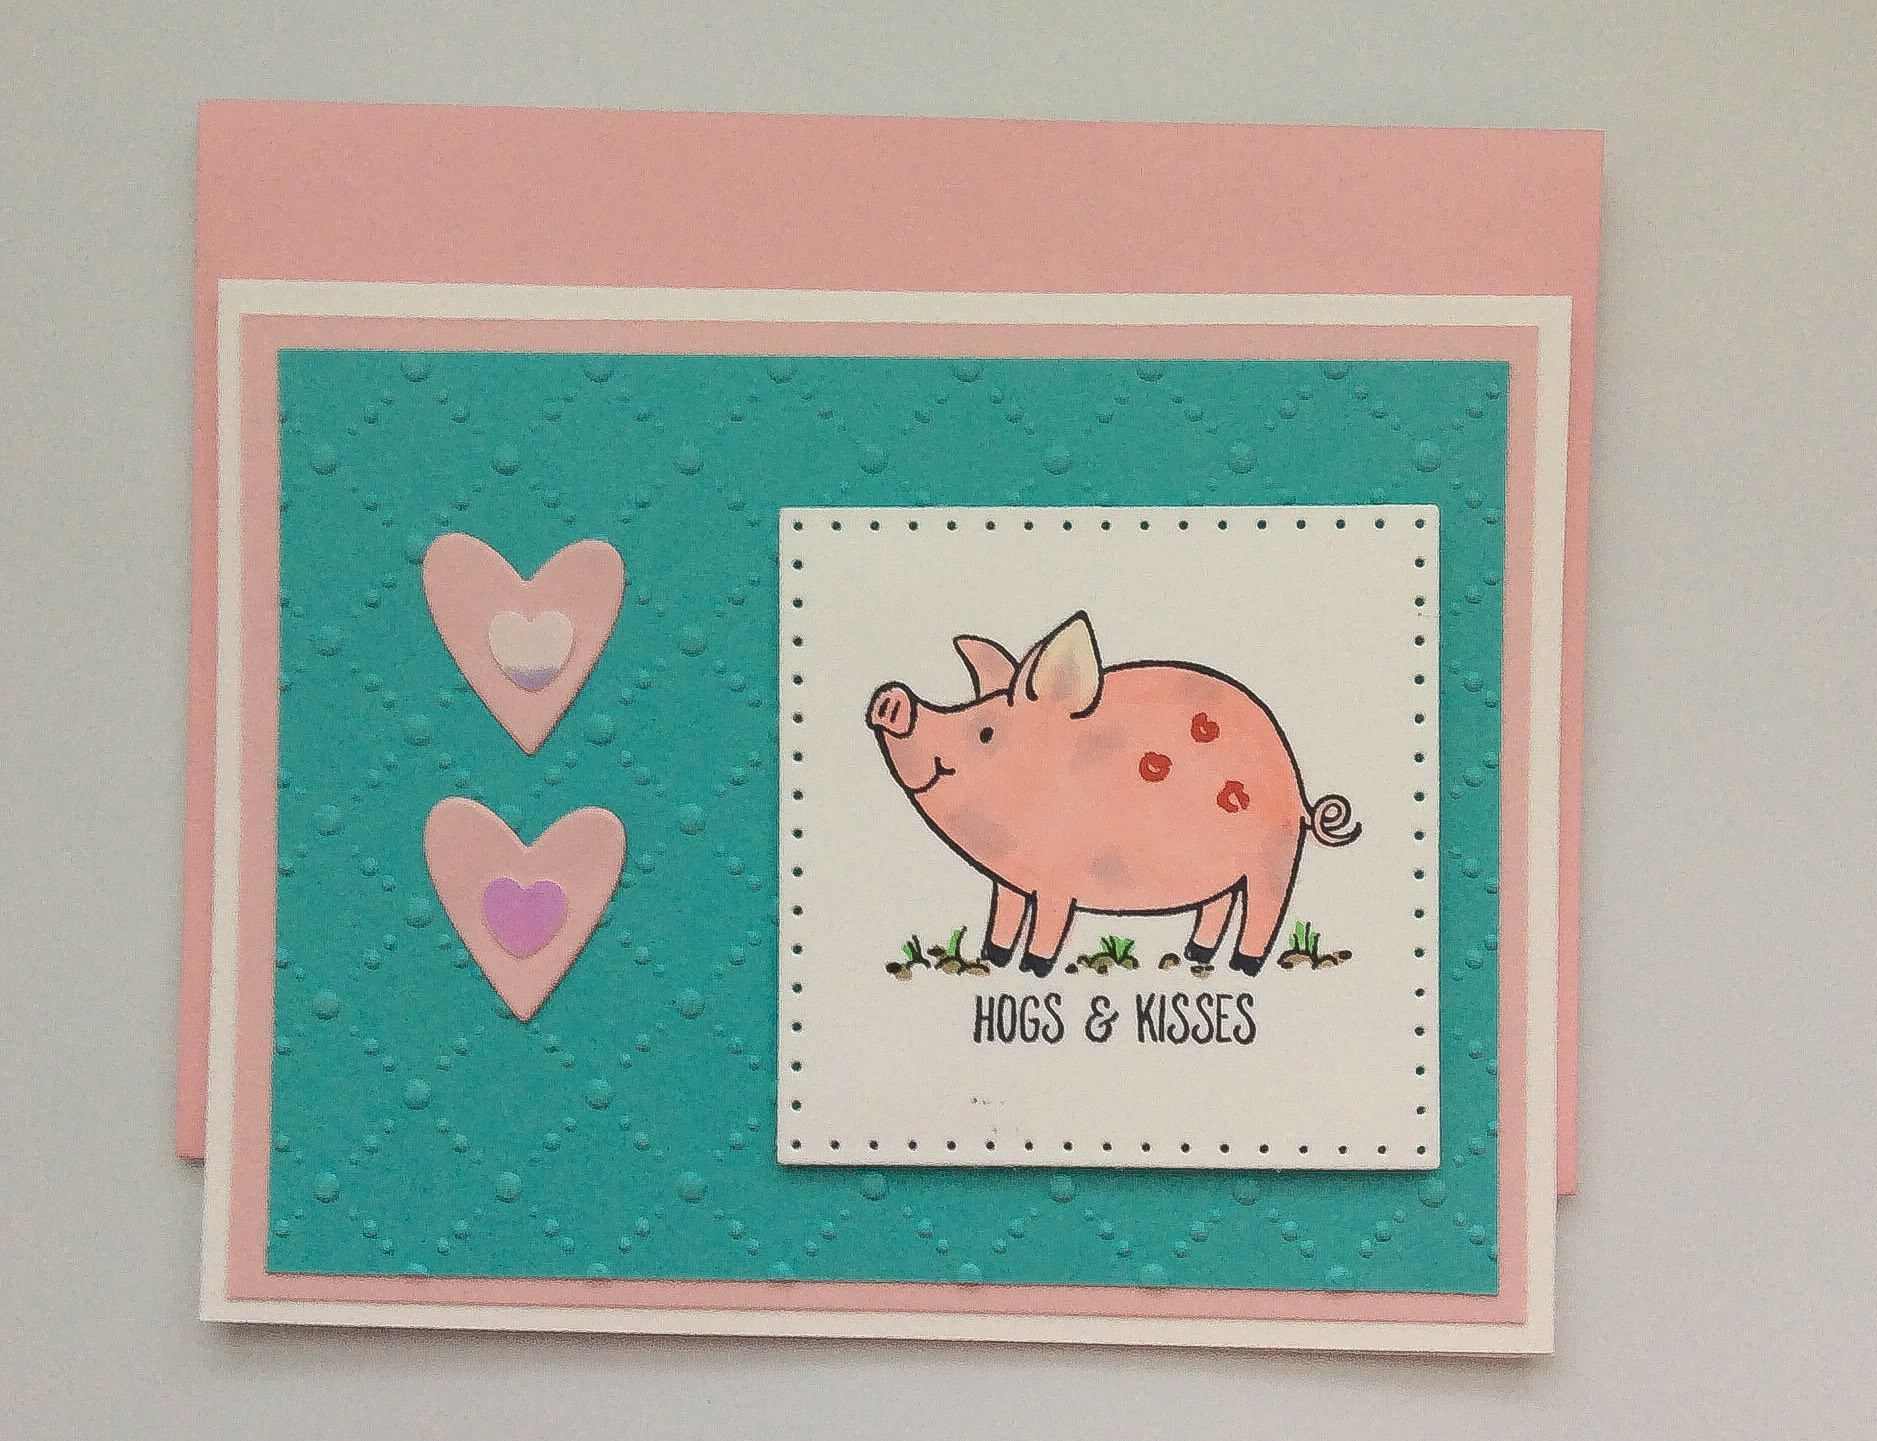 Grand opening sale funny pig greeting card cute pig card grand opening sale funny pig greeting card cute pig card whimsical pig card kristyandbryce Gallery